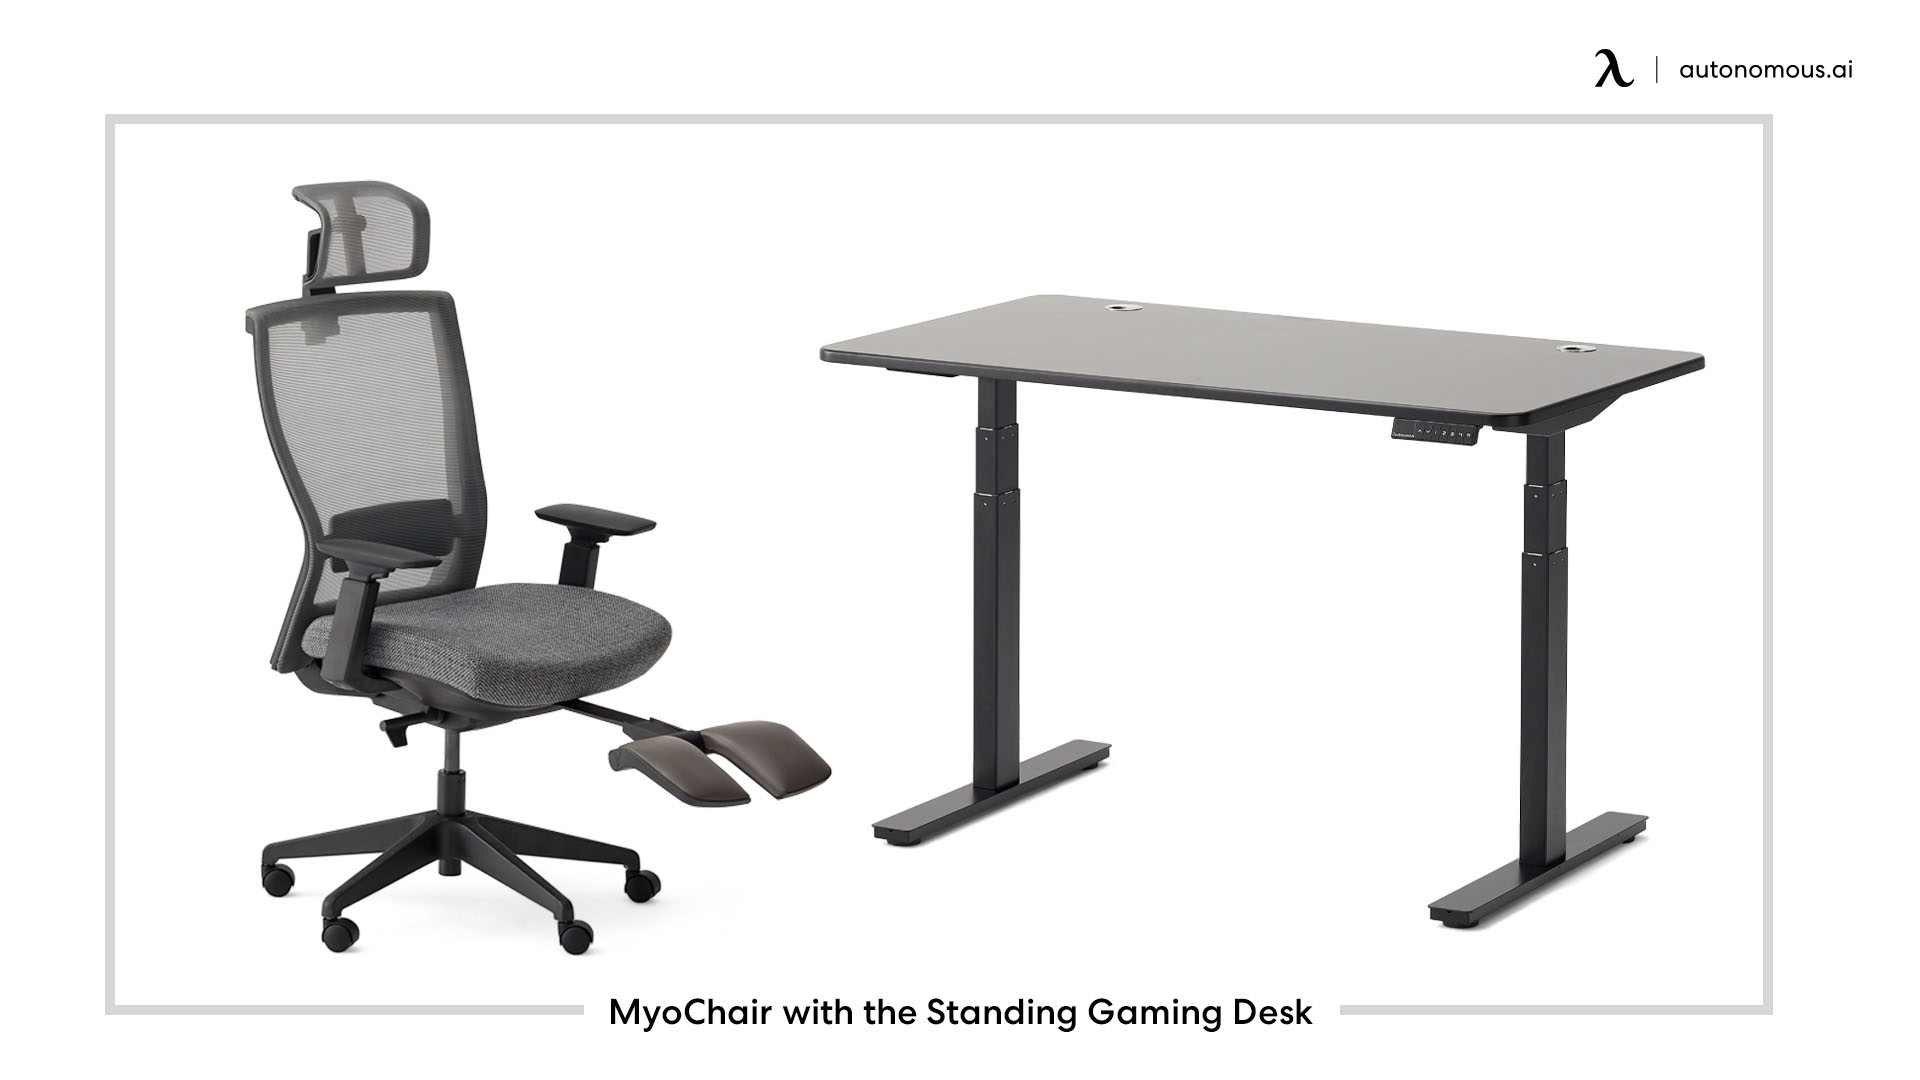 MyoChair with the Standing Gaming Desk